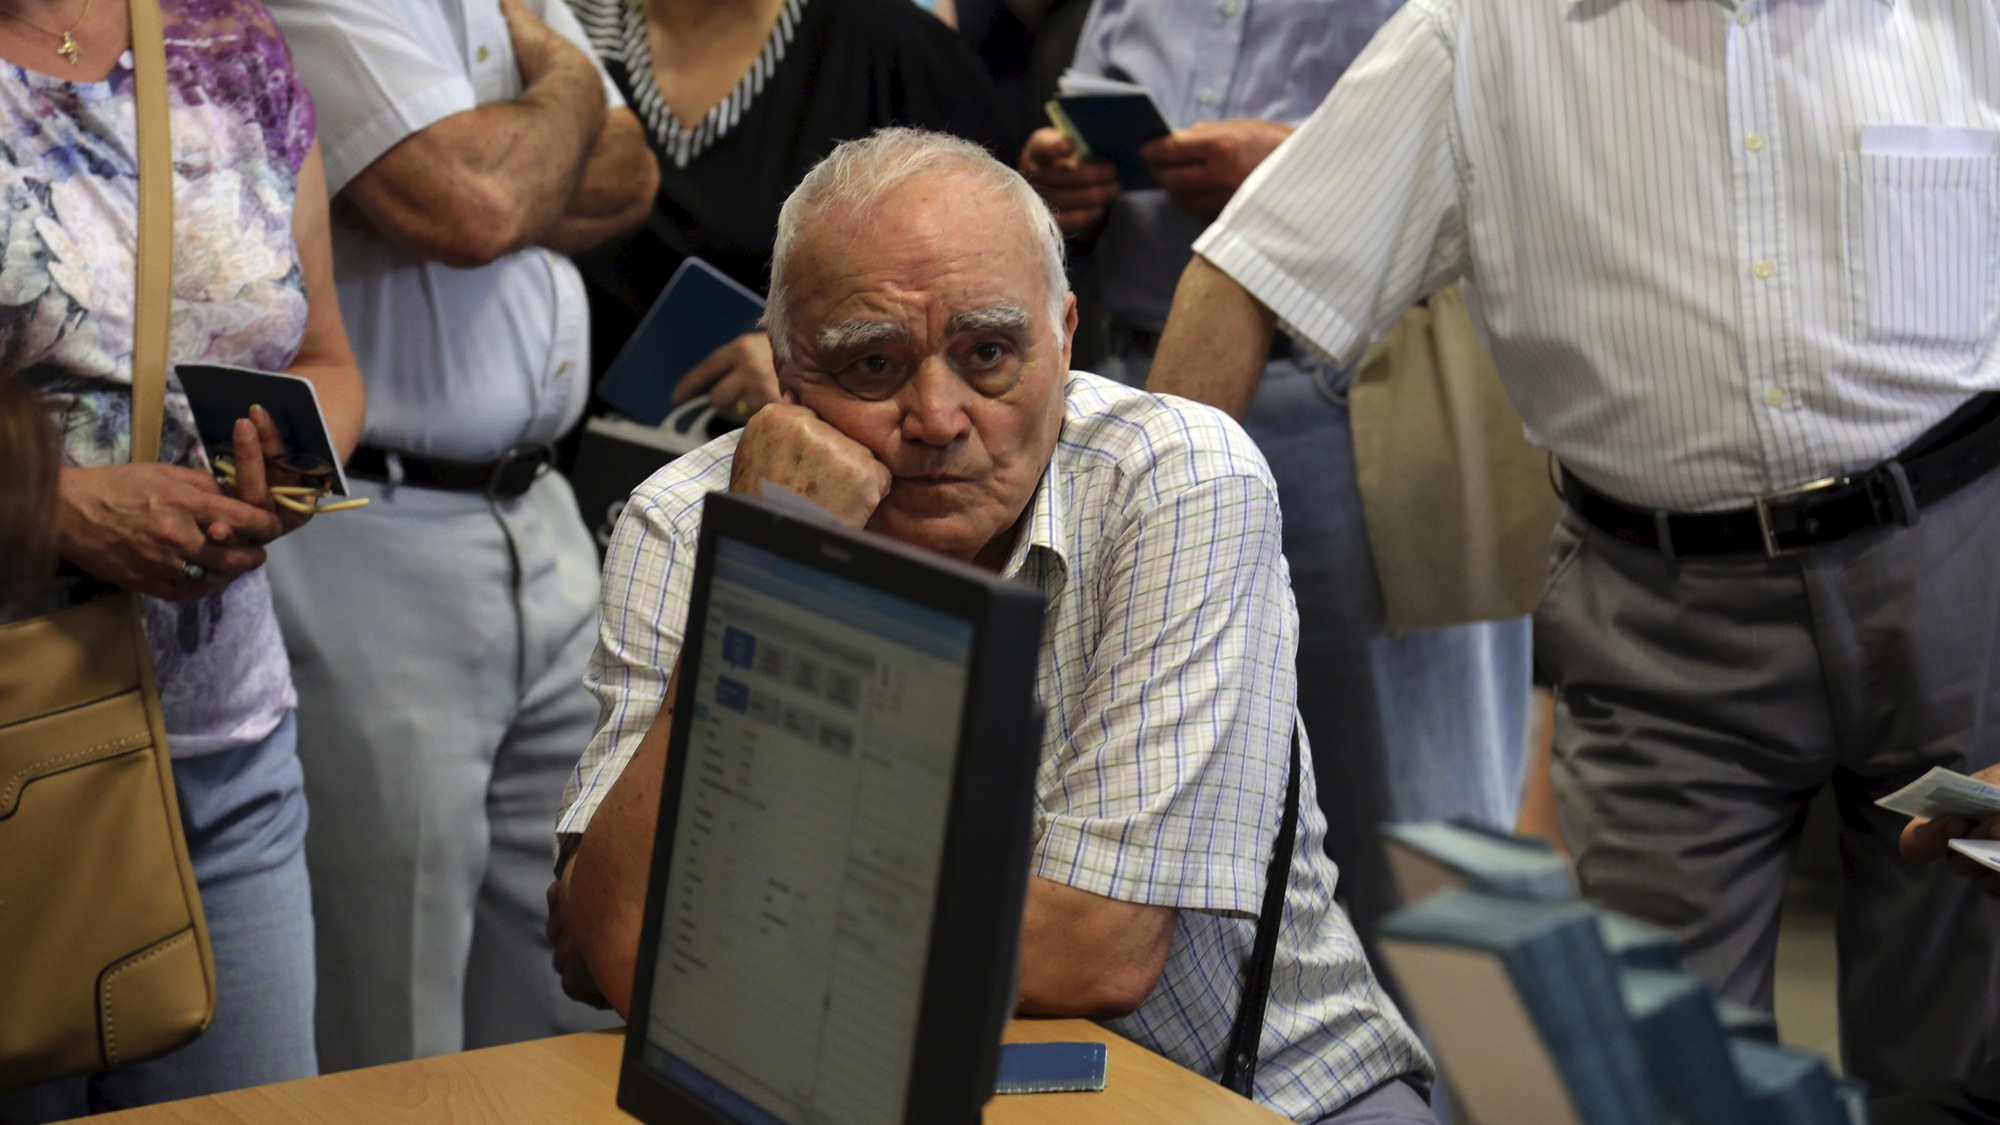 "A pensioner waits to receive part of his pension inside a National Bank branch in Iraklio on the island of Crete, Greece, July 2, 2015. A ""No"" vote in Sunday's referendum on cash-for-reforms proposals could lead to Greece leaving the euro zone, while the bloc would immediately resume work on a deal if the outcome was ""Yes,"" France's finance minister said on Thursday. REUTERS/Stefanos Rapanis"